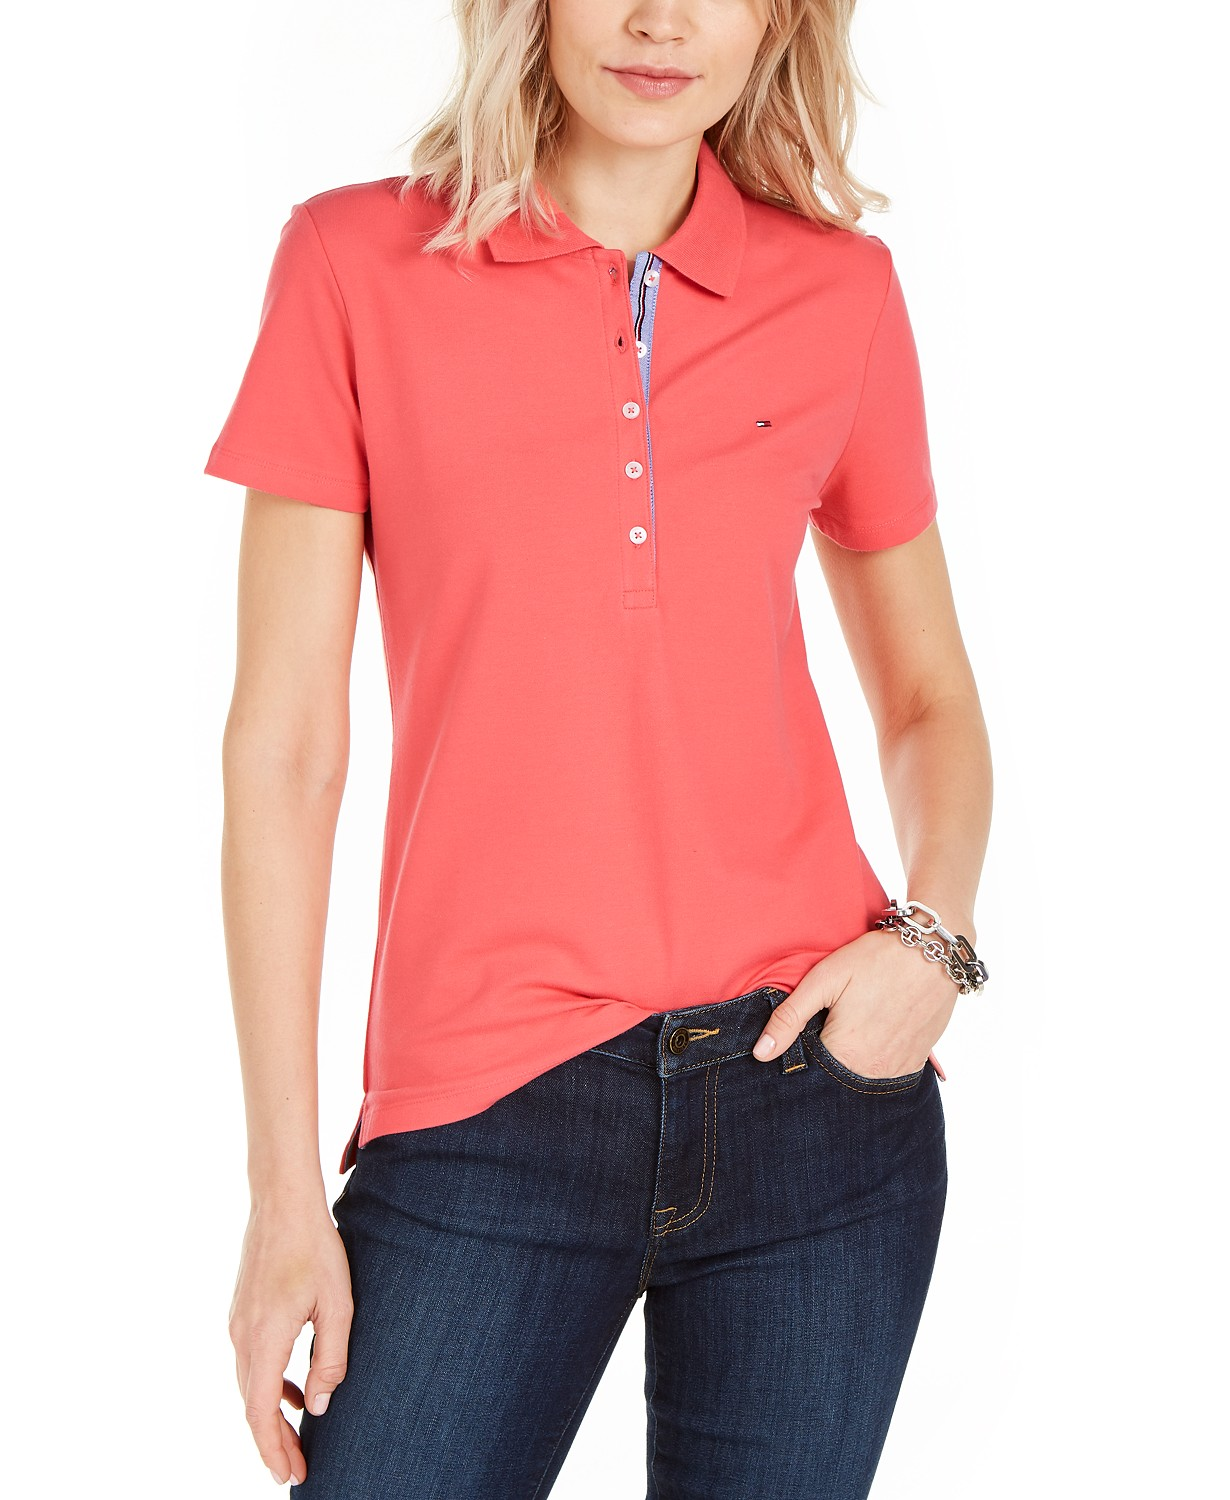 MACYS LIMITED TIME SPECIAL! TOMMY HILFIGER & MORE WOMEN'S TOPS STARTING AT $9.99!